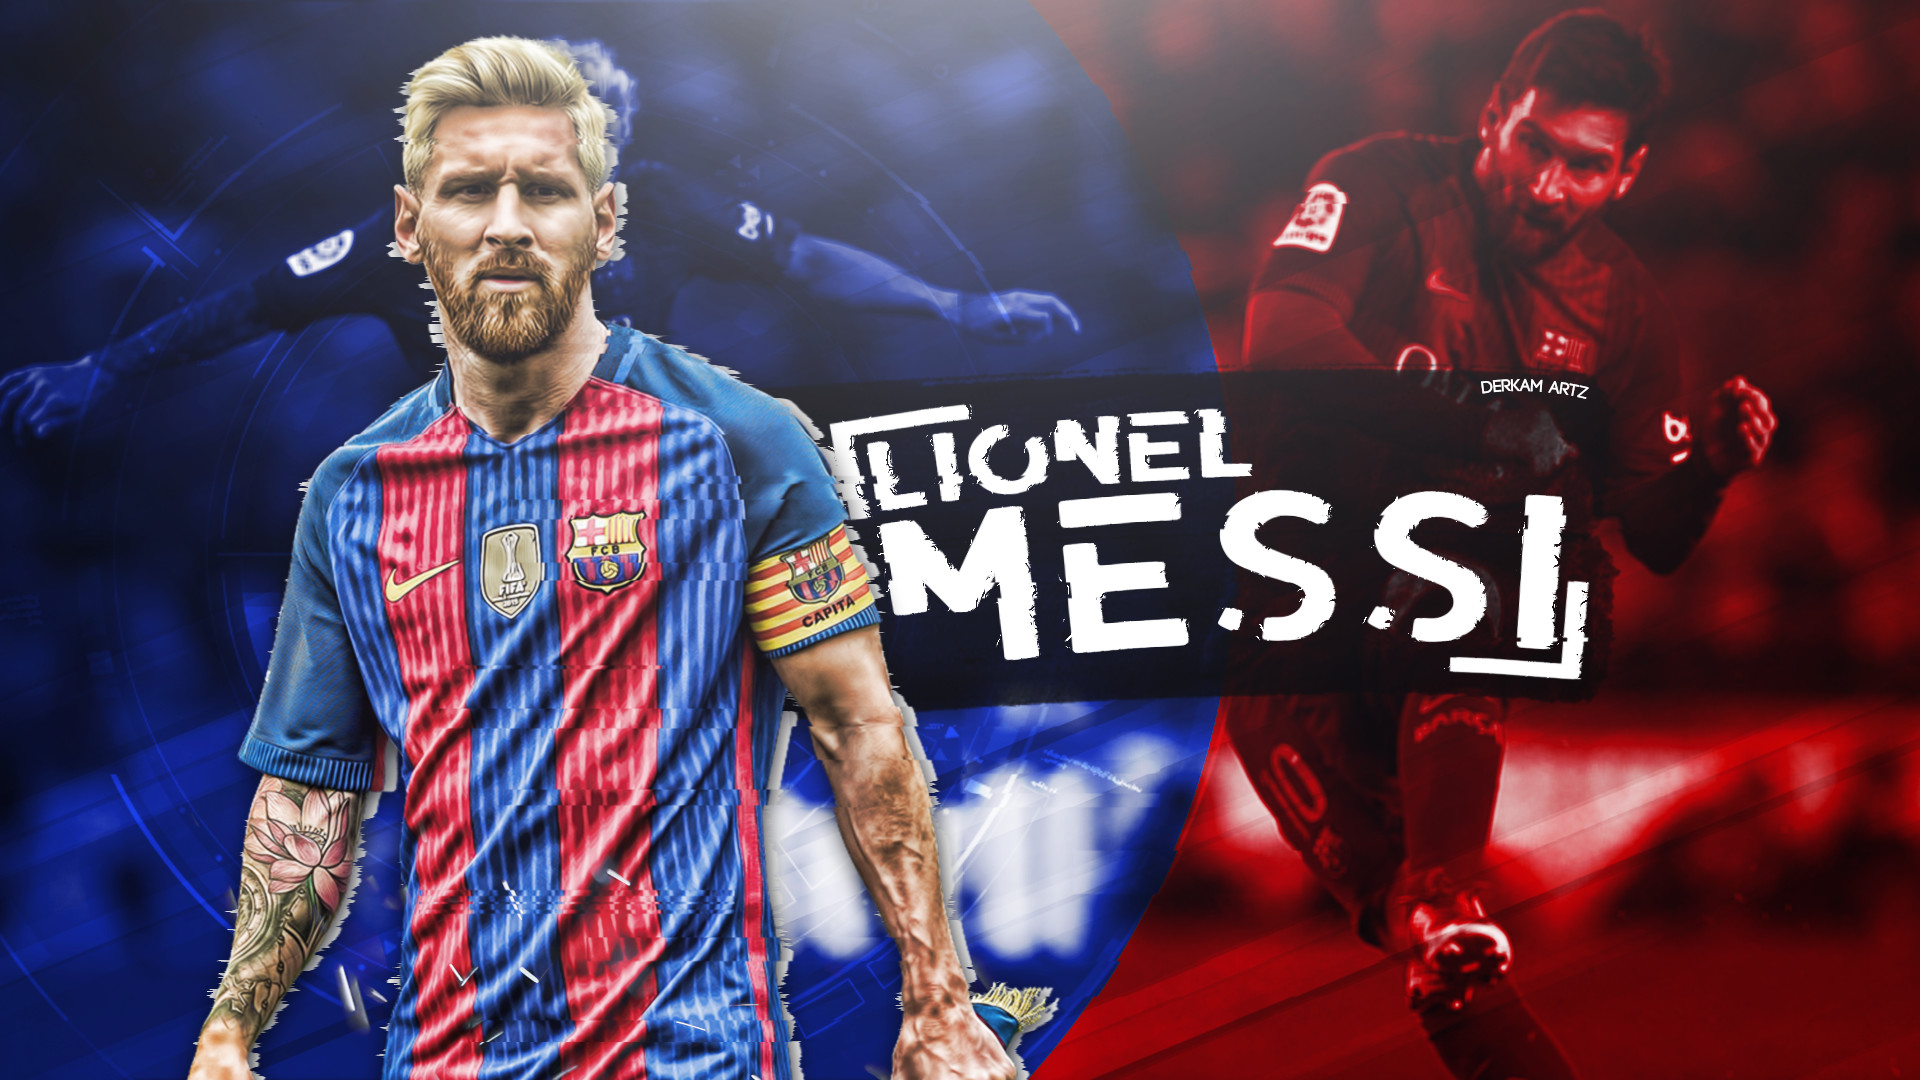 Lionel Messi Wallpapers Hd 2018 83 Background Pictures